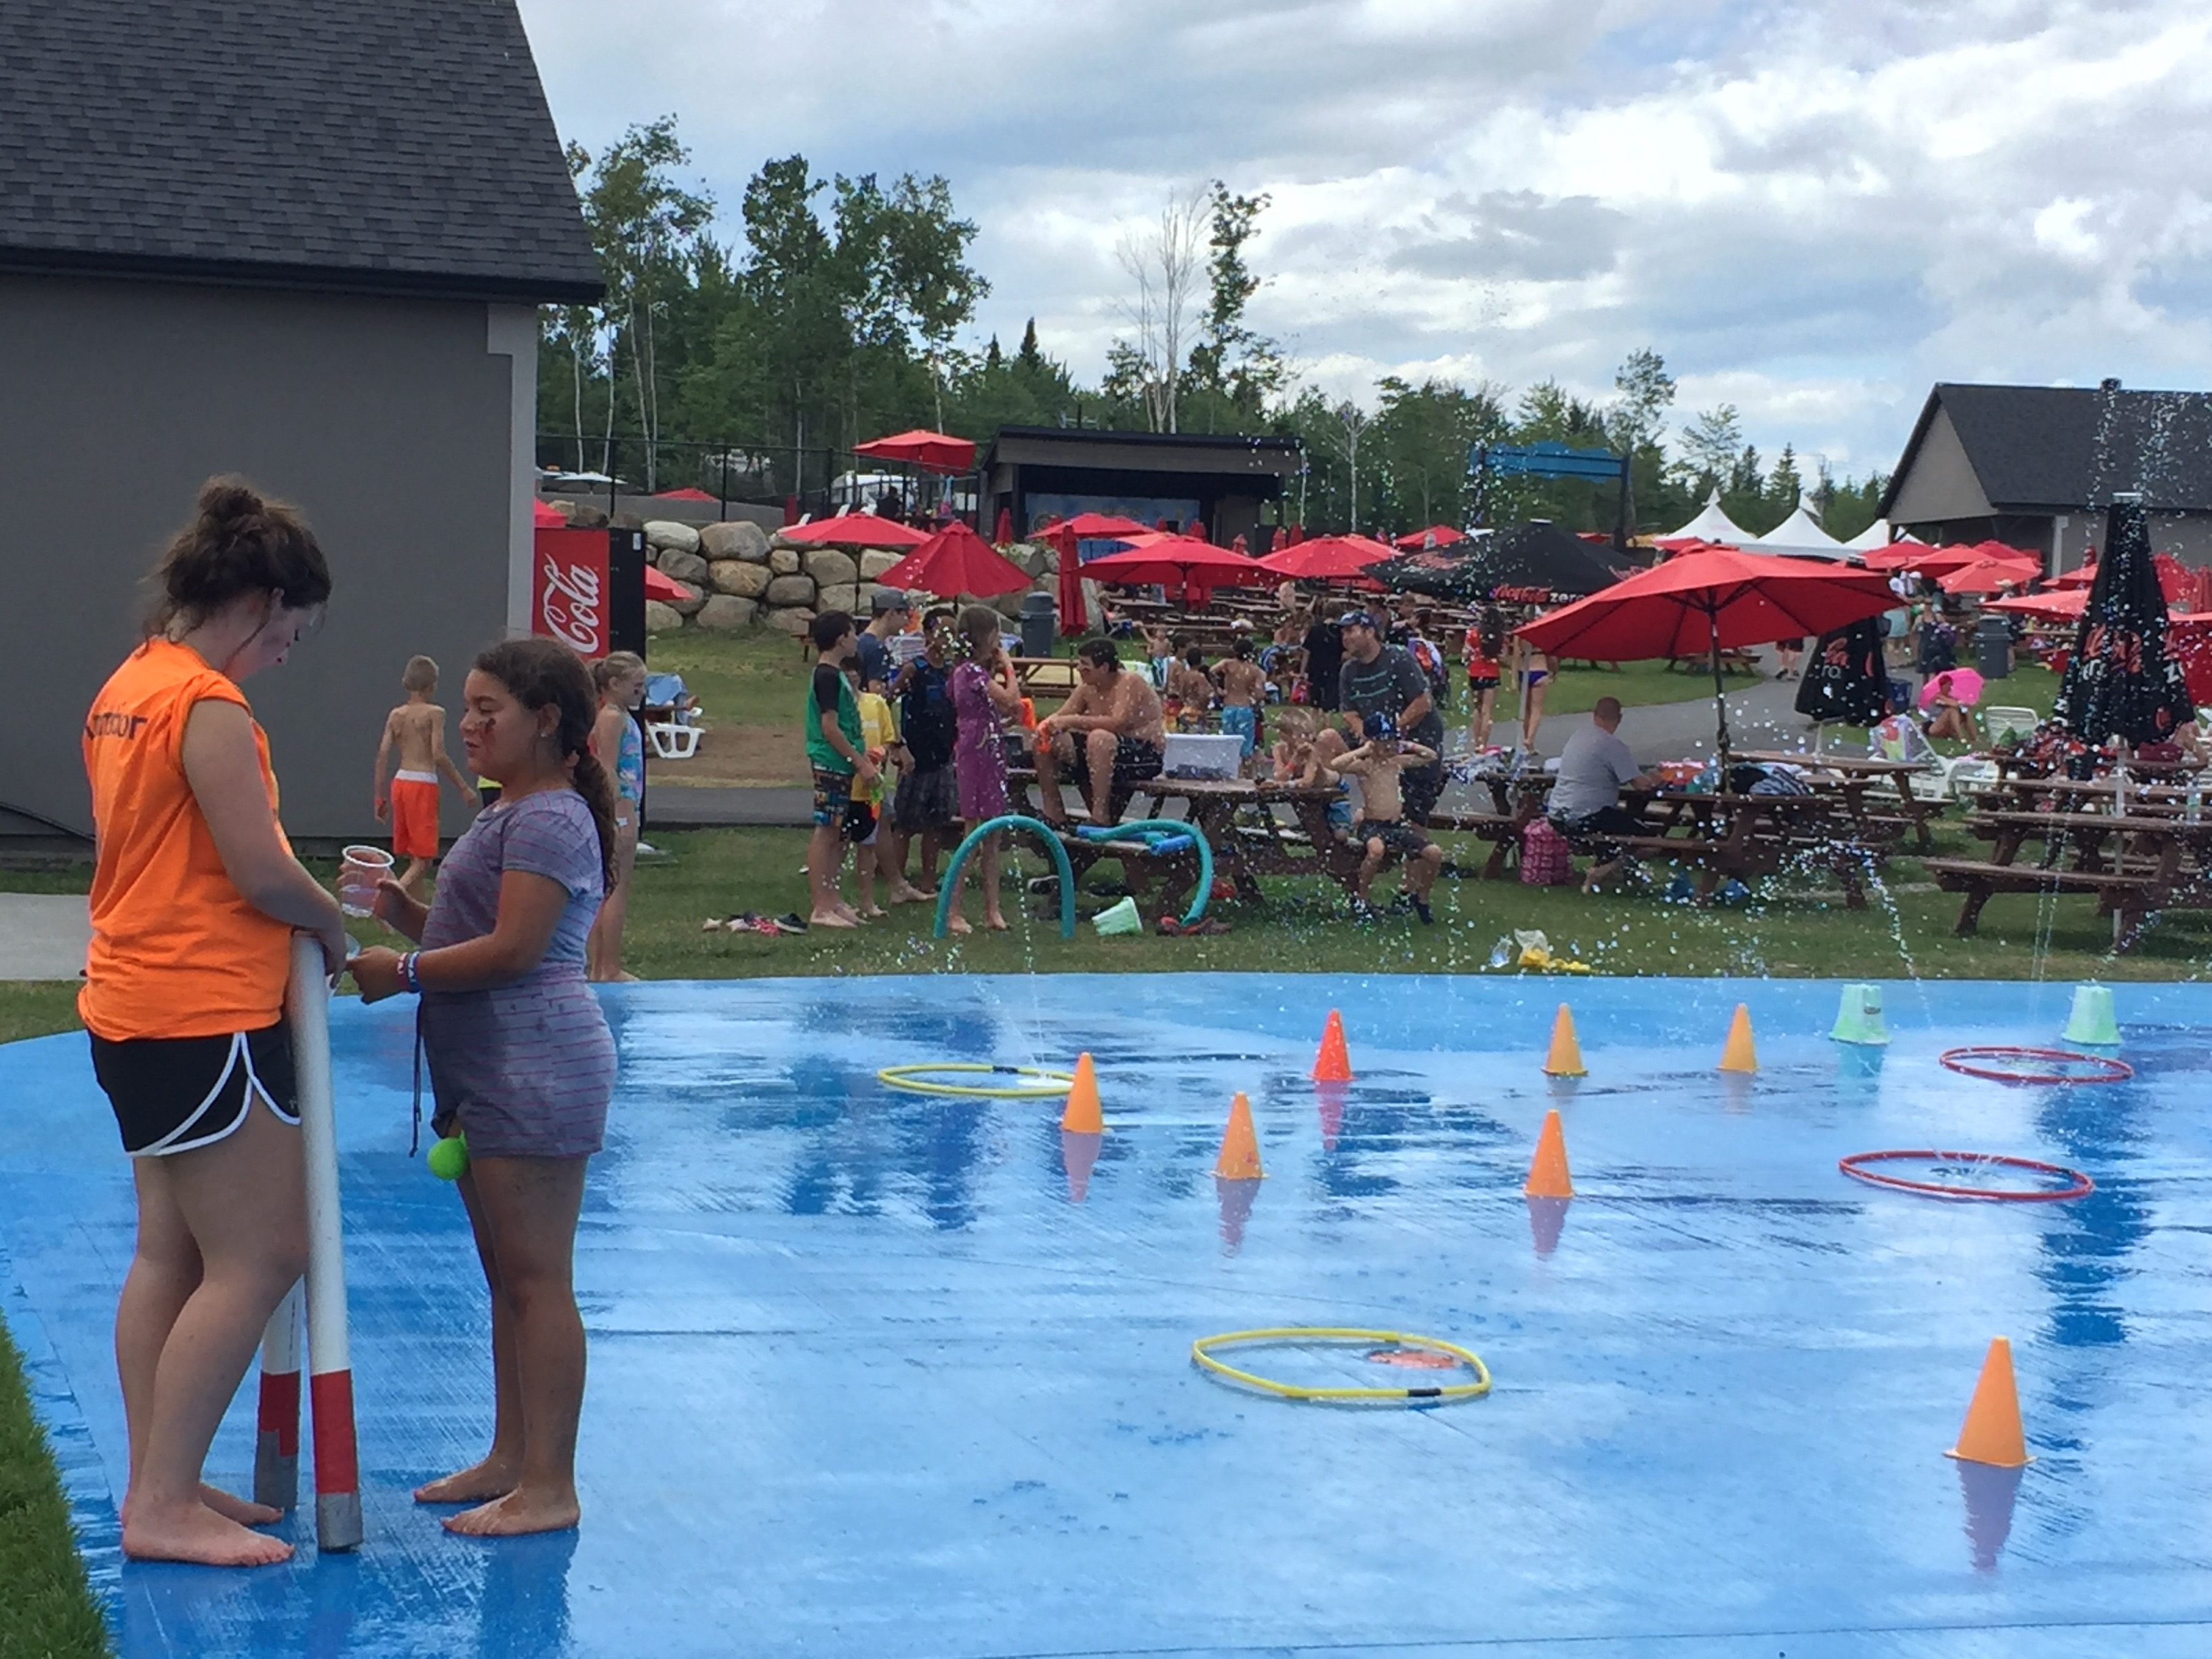 http://www.familycampgrounds.ca/wp-content/uploads/2016/12/animation-enfant-parc-aquatique-atlantide-5.jpg